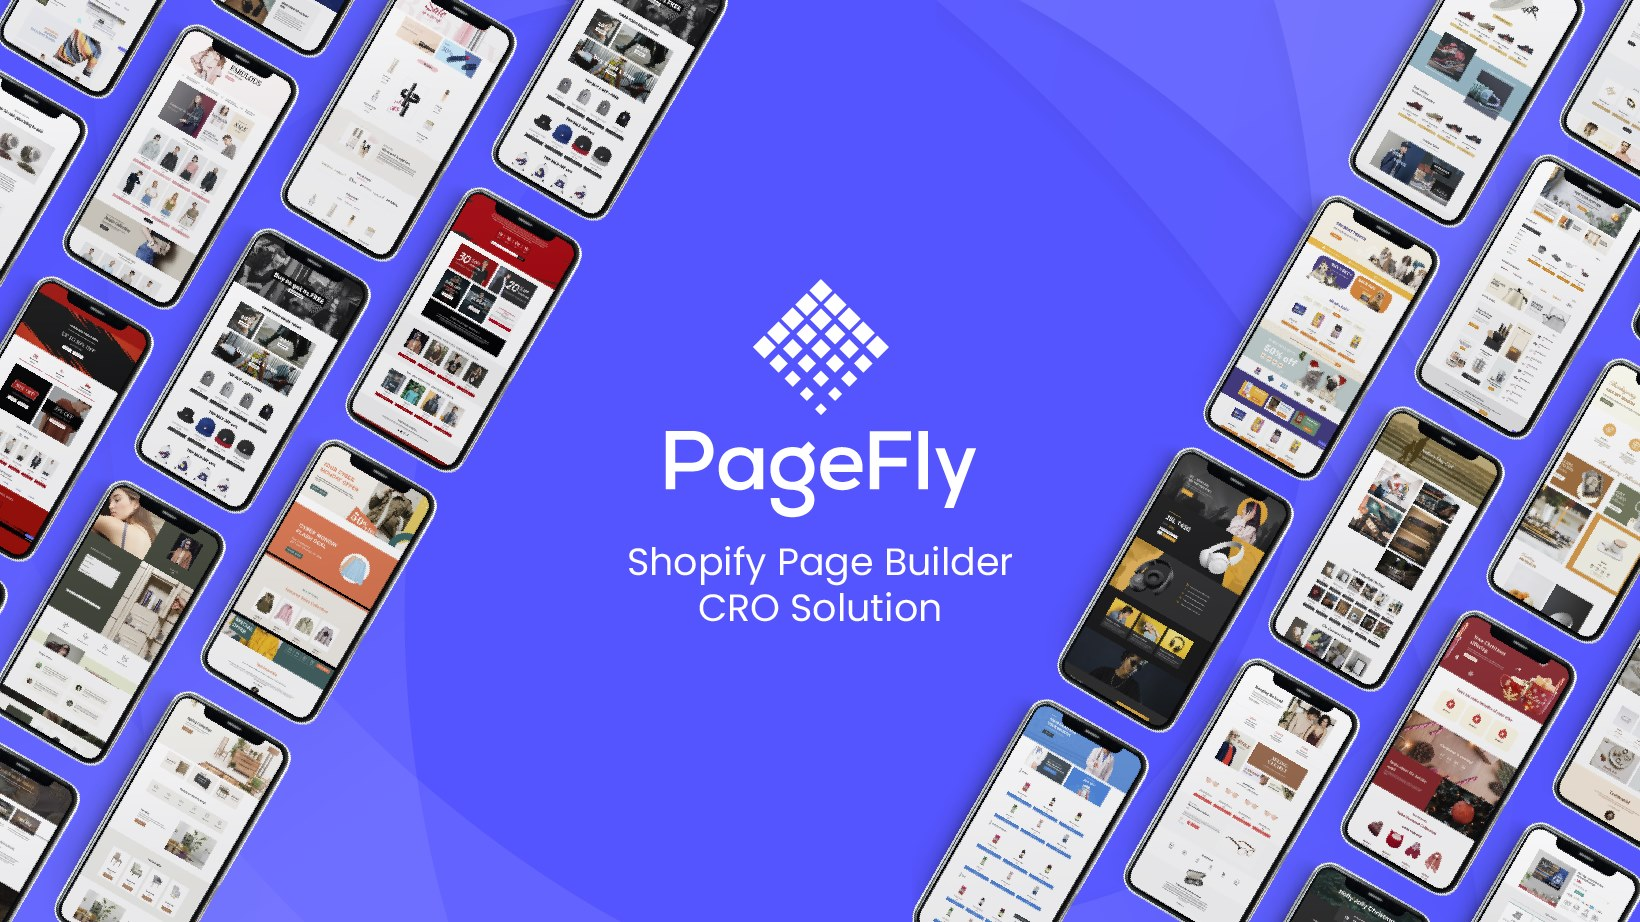 How to Build a High-Converting Shopify Store with PageFly and Candy Rack